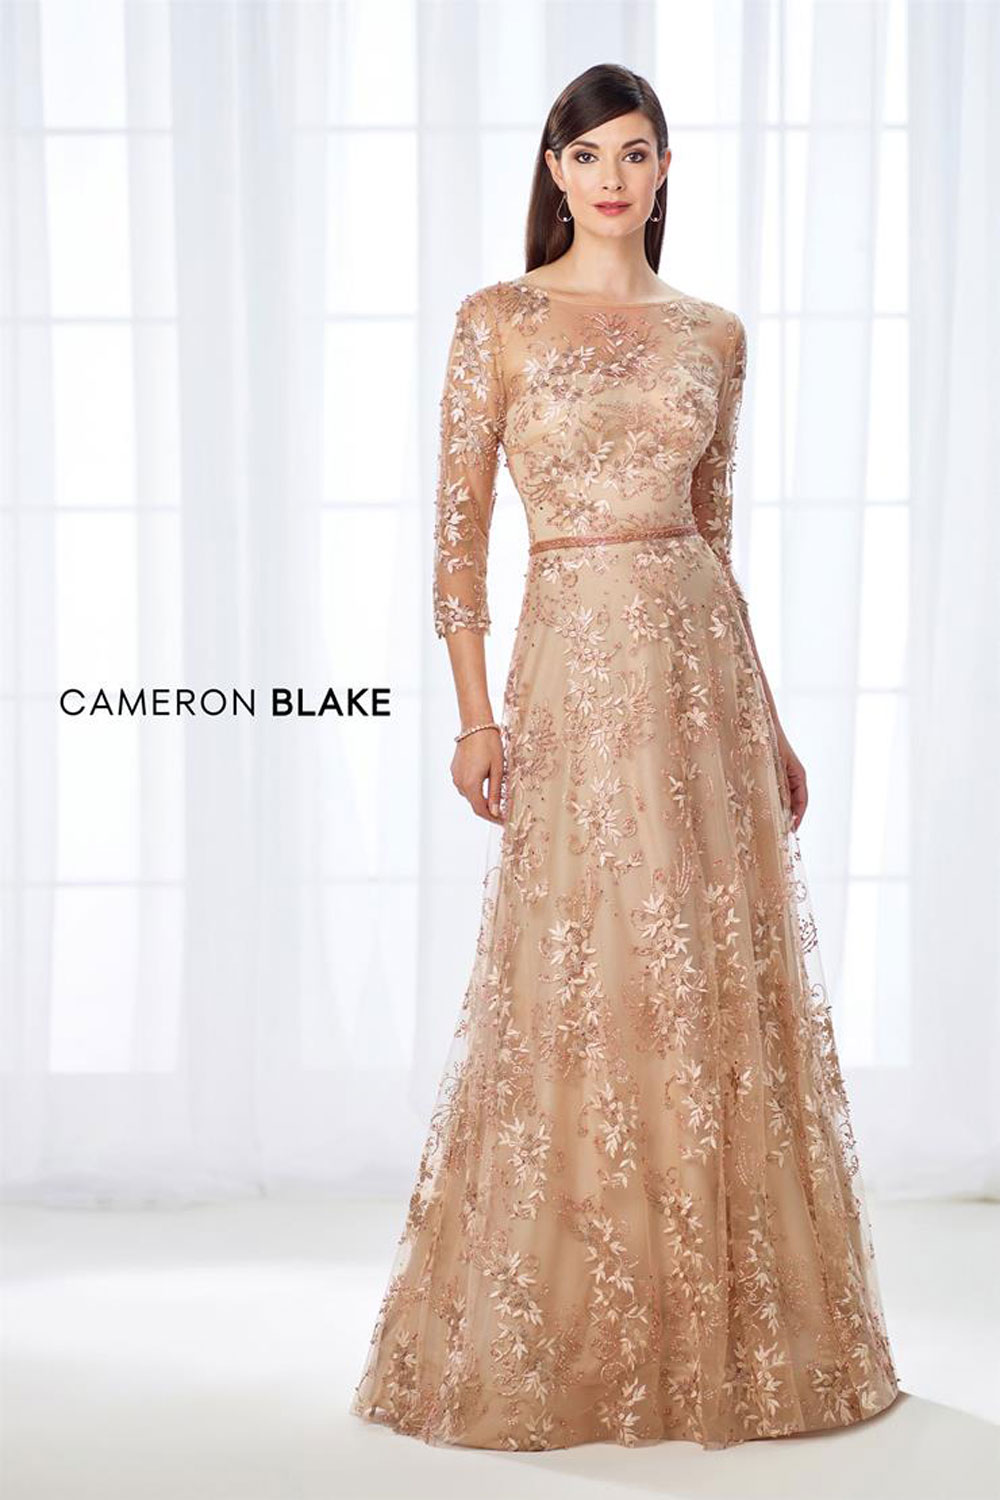 Classic & dreamy A-line gown with illusion lace